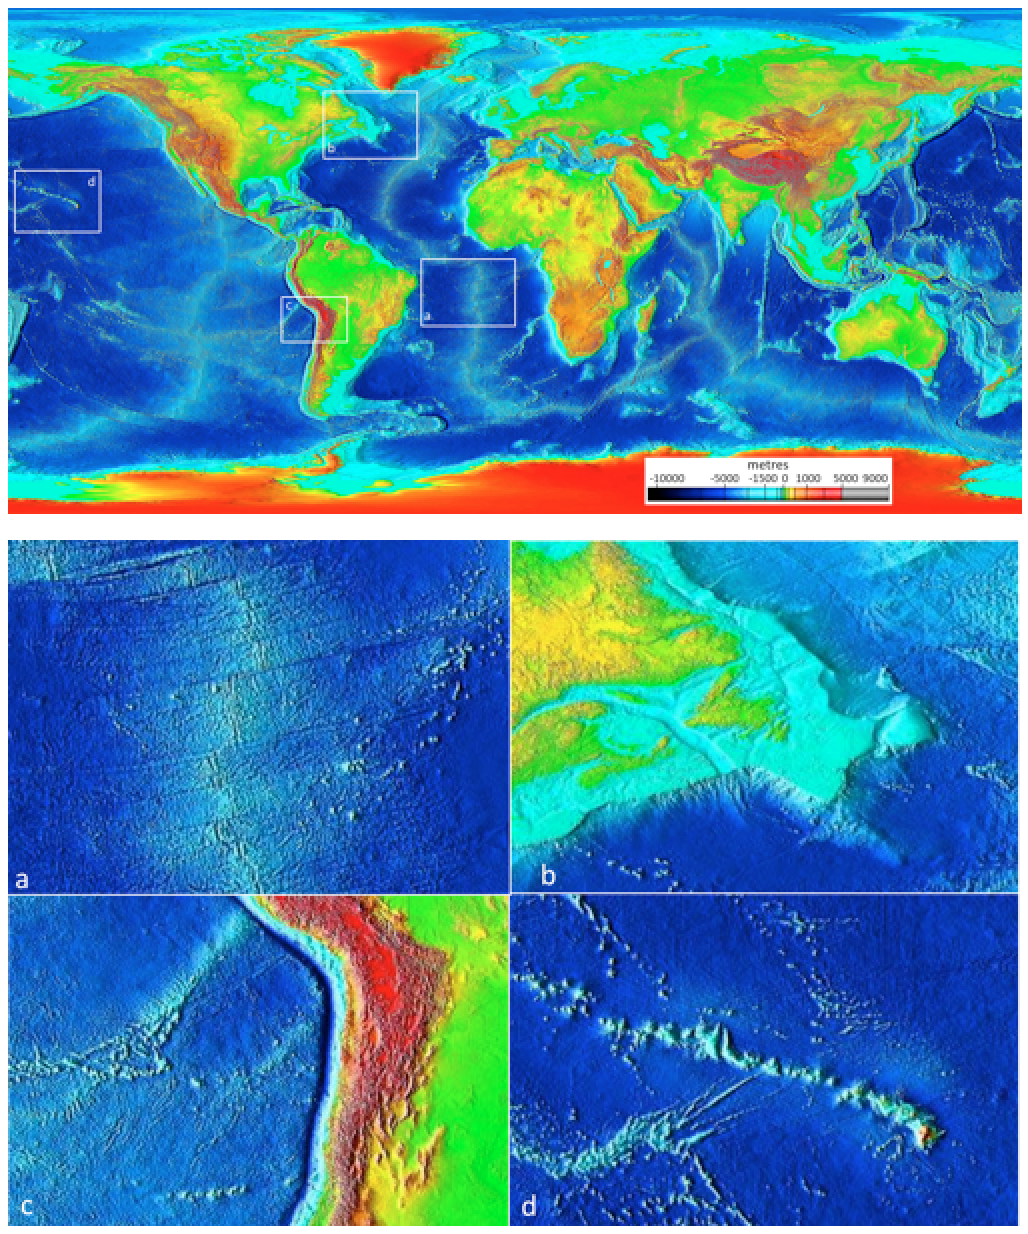 Figure 4.9 Ocean floor bathymetry (and continental topography). Inset (a): the mid-Atlantic ridge, (b): the Newfoundland continental shelf, (c): the Nazca trench adjacent to South America, and (d): the Hawaiian Island chain. [SE after NOAA, http://bit.ly/1OtRMc0]